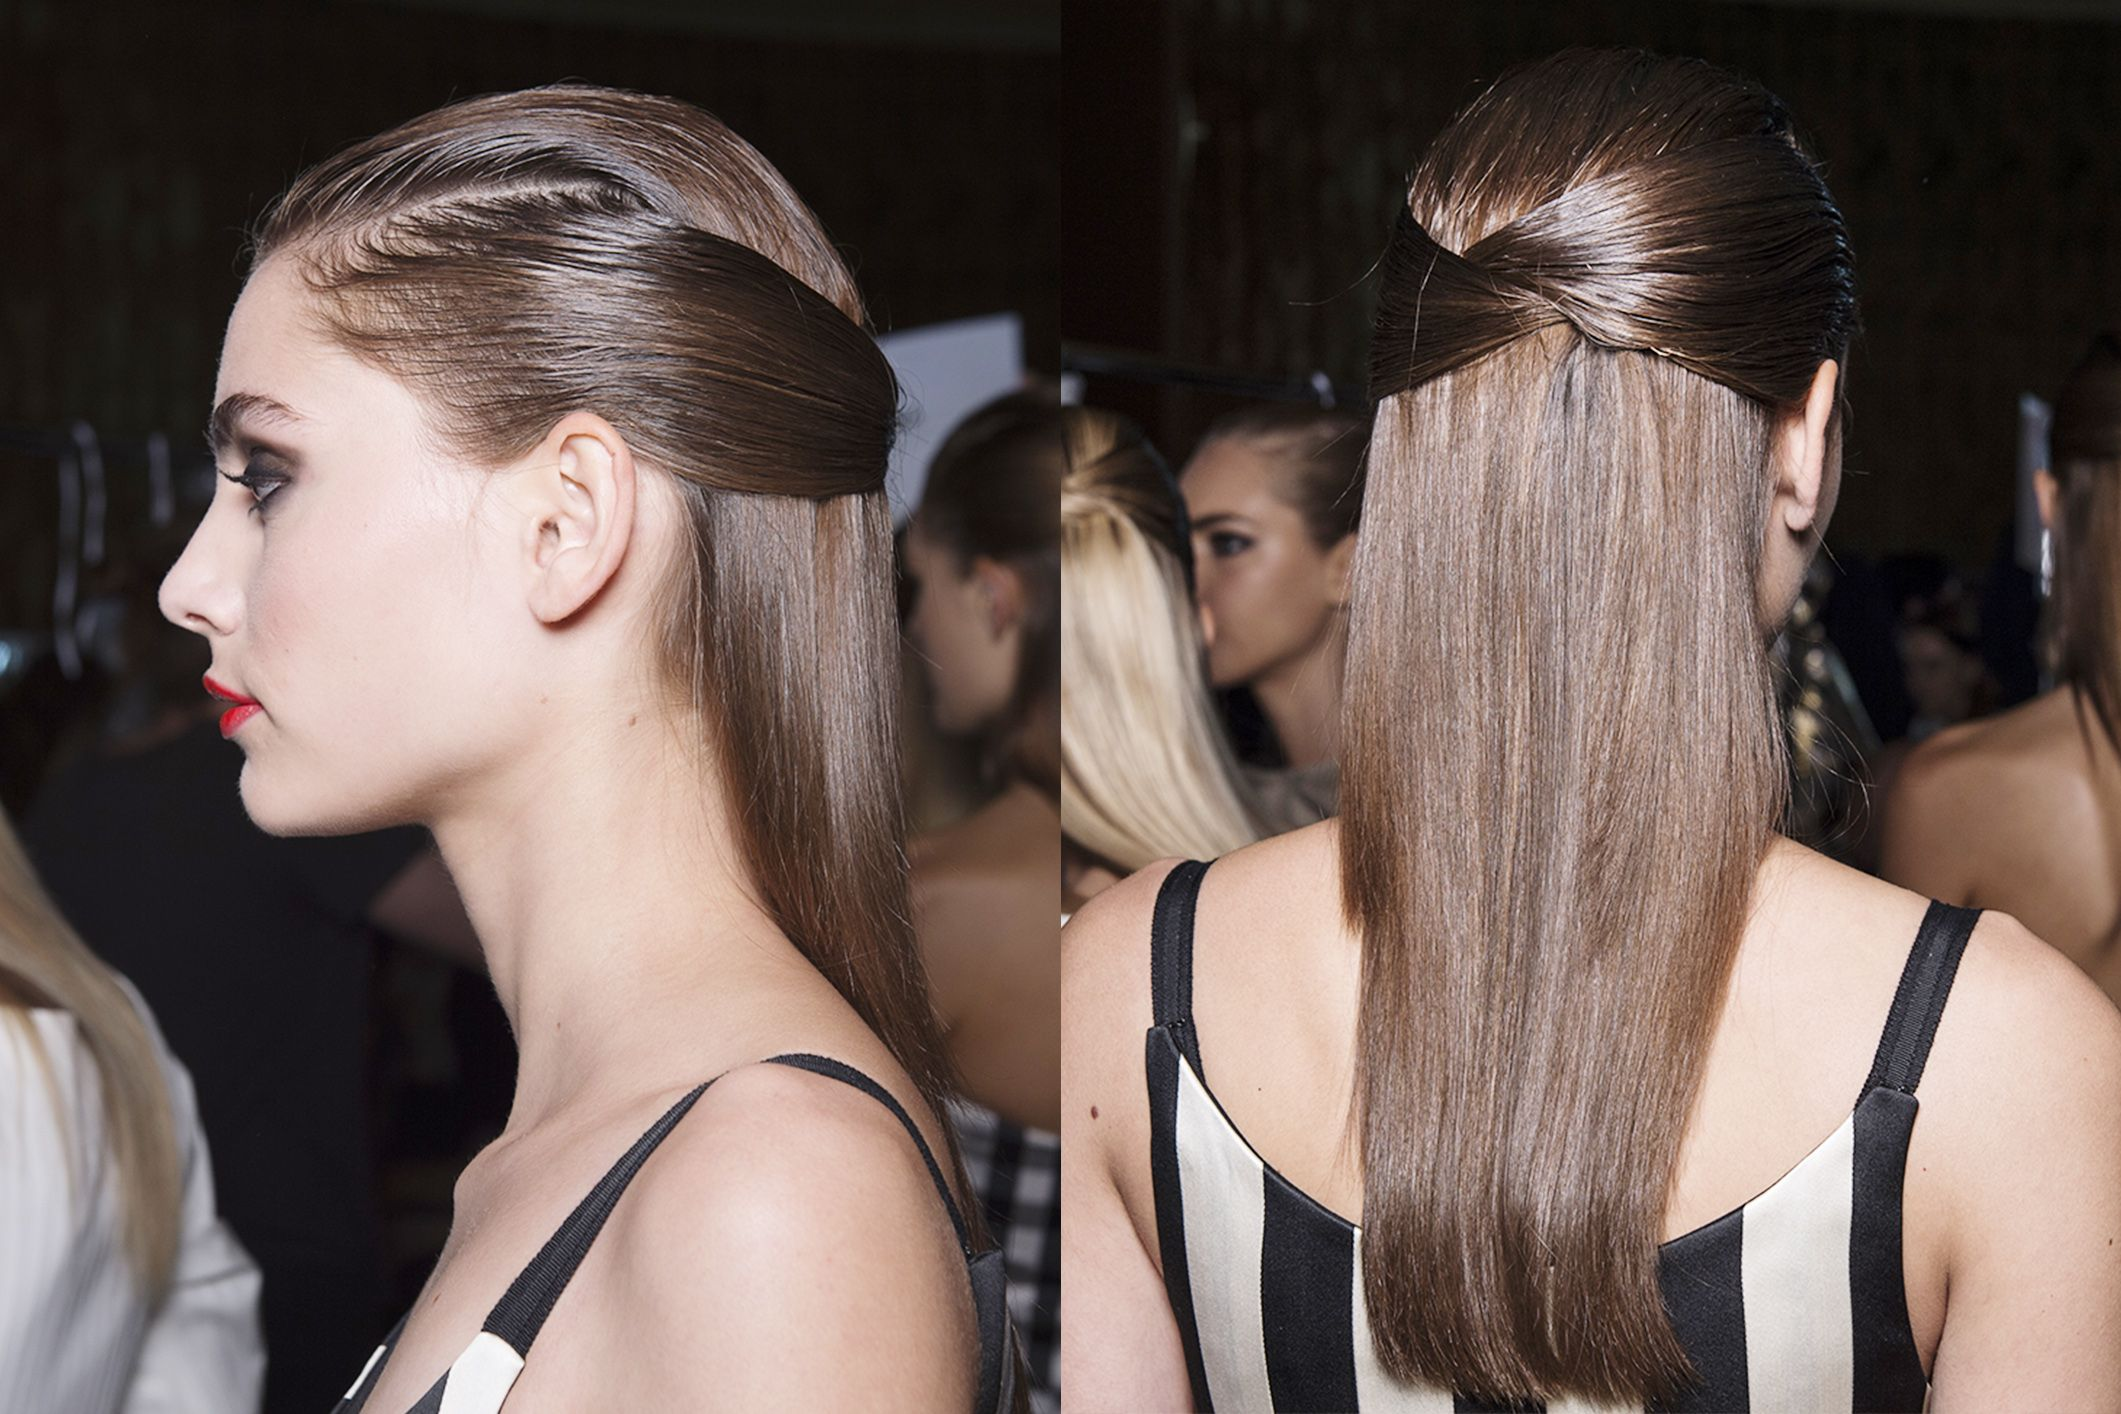 spring 2017 hair trends - spring and summer hairstyles seen on the